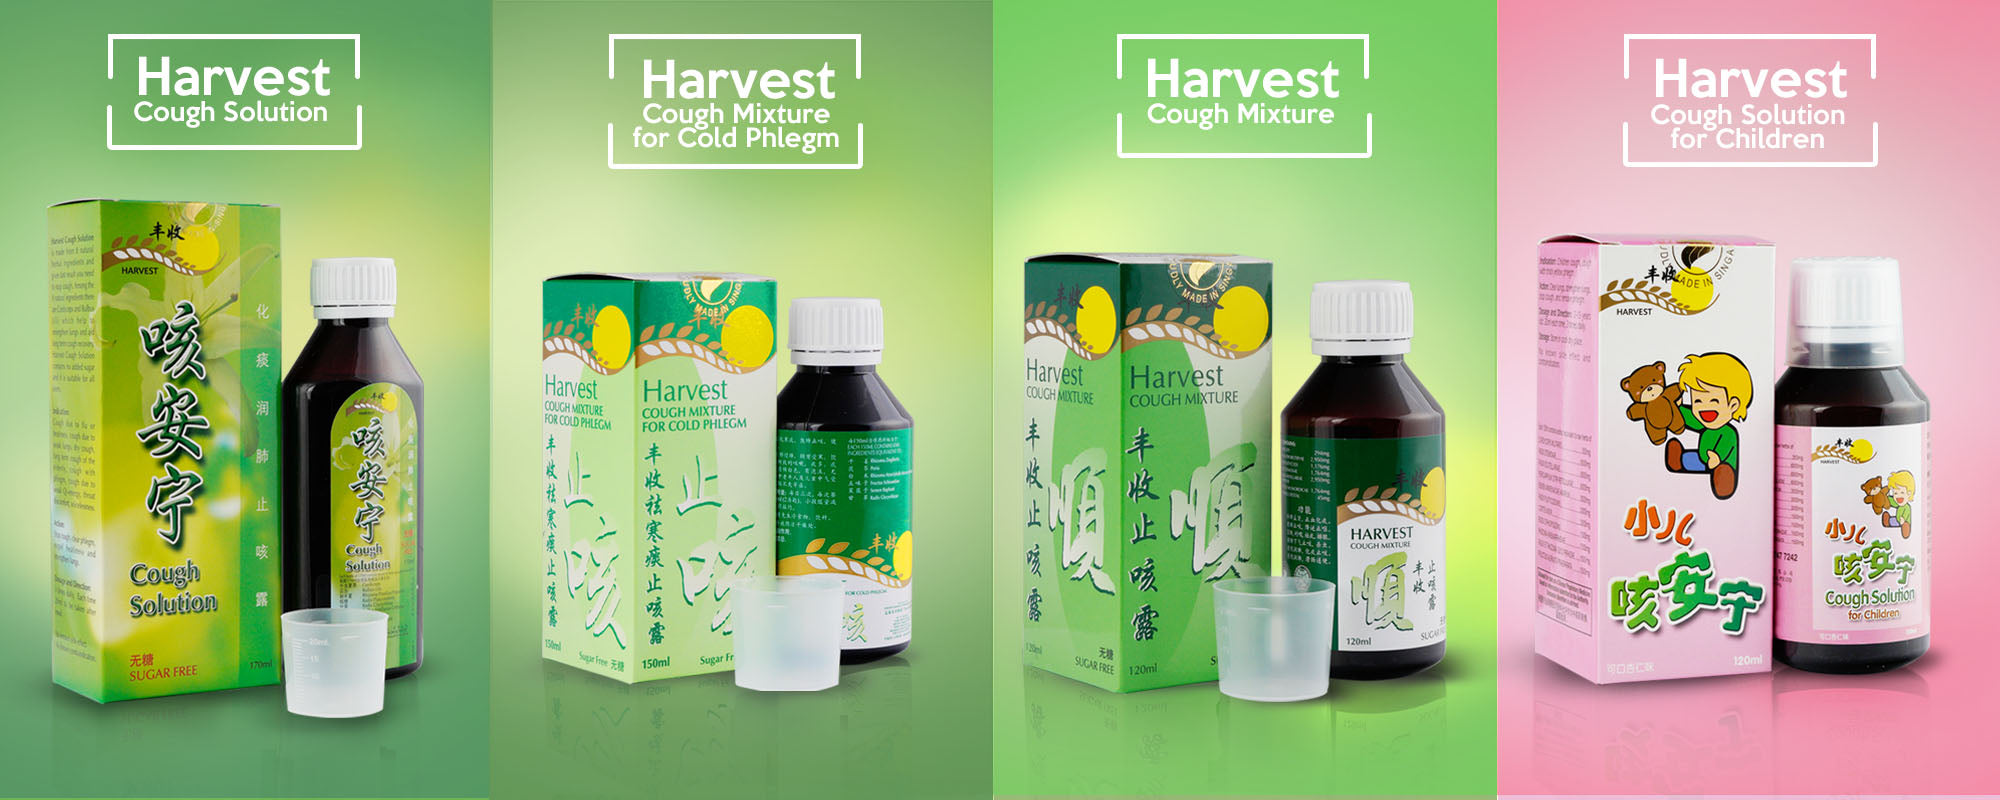 HArvest cogh Solutions